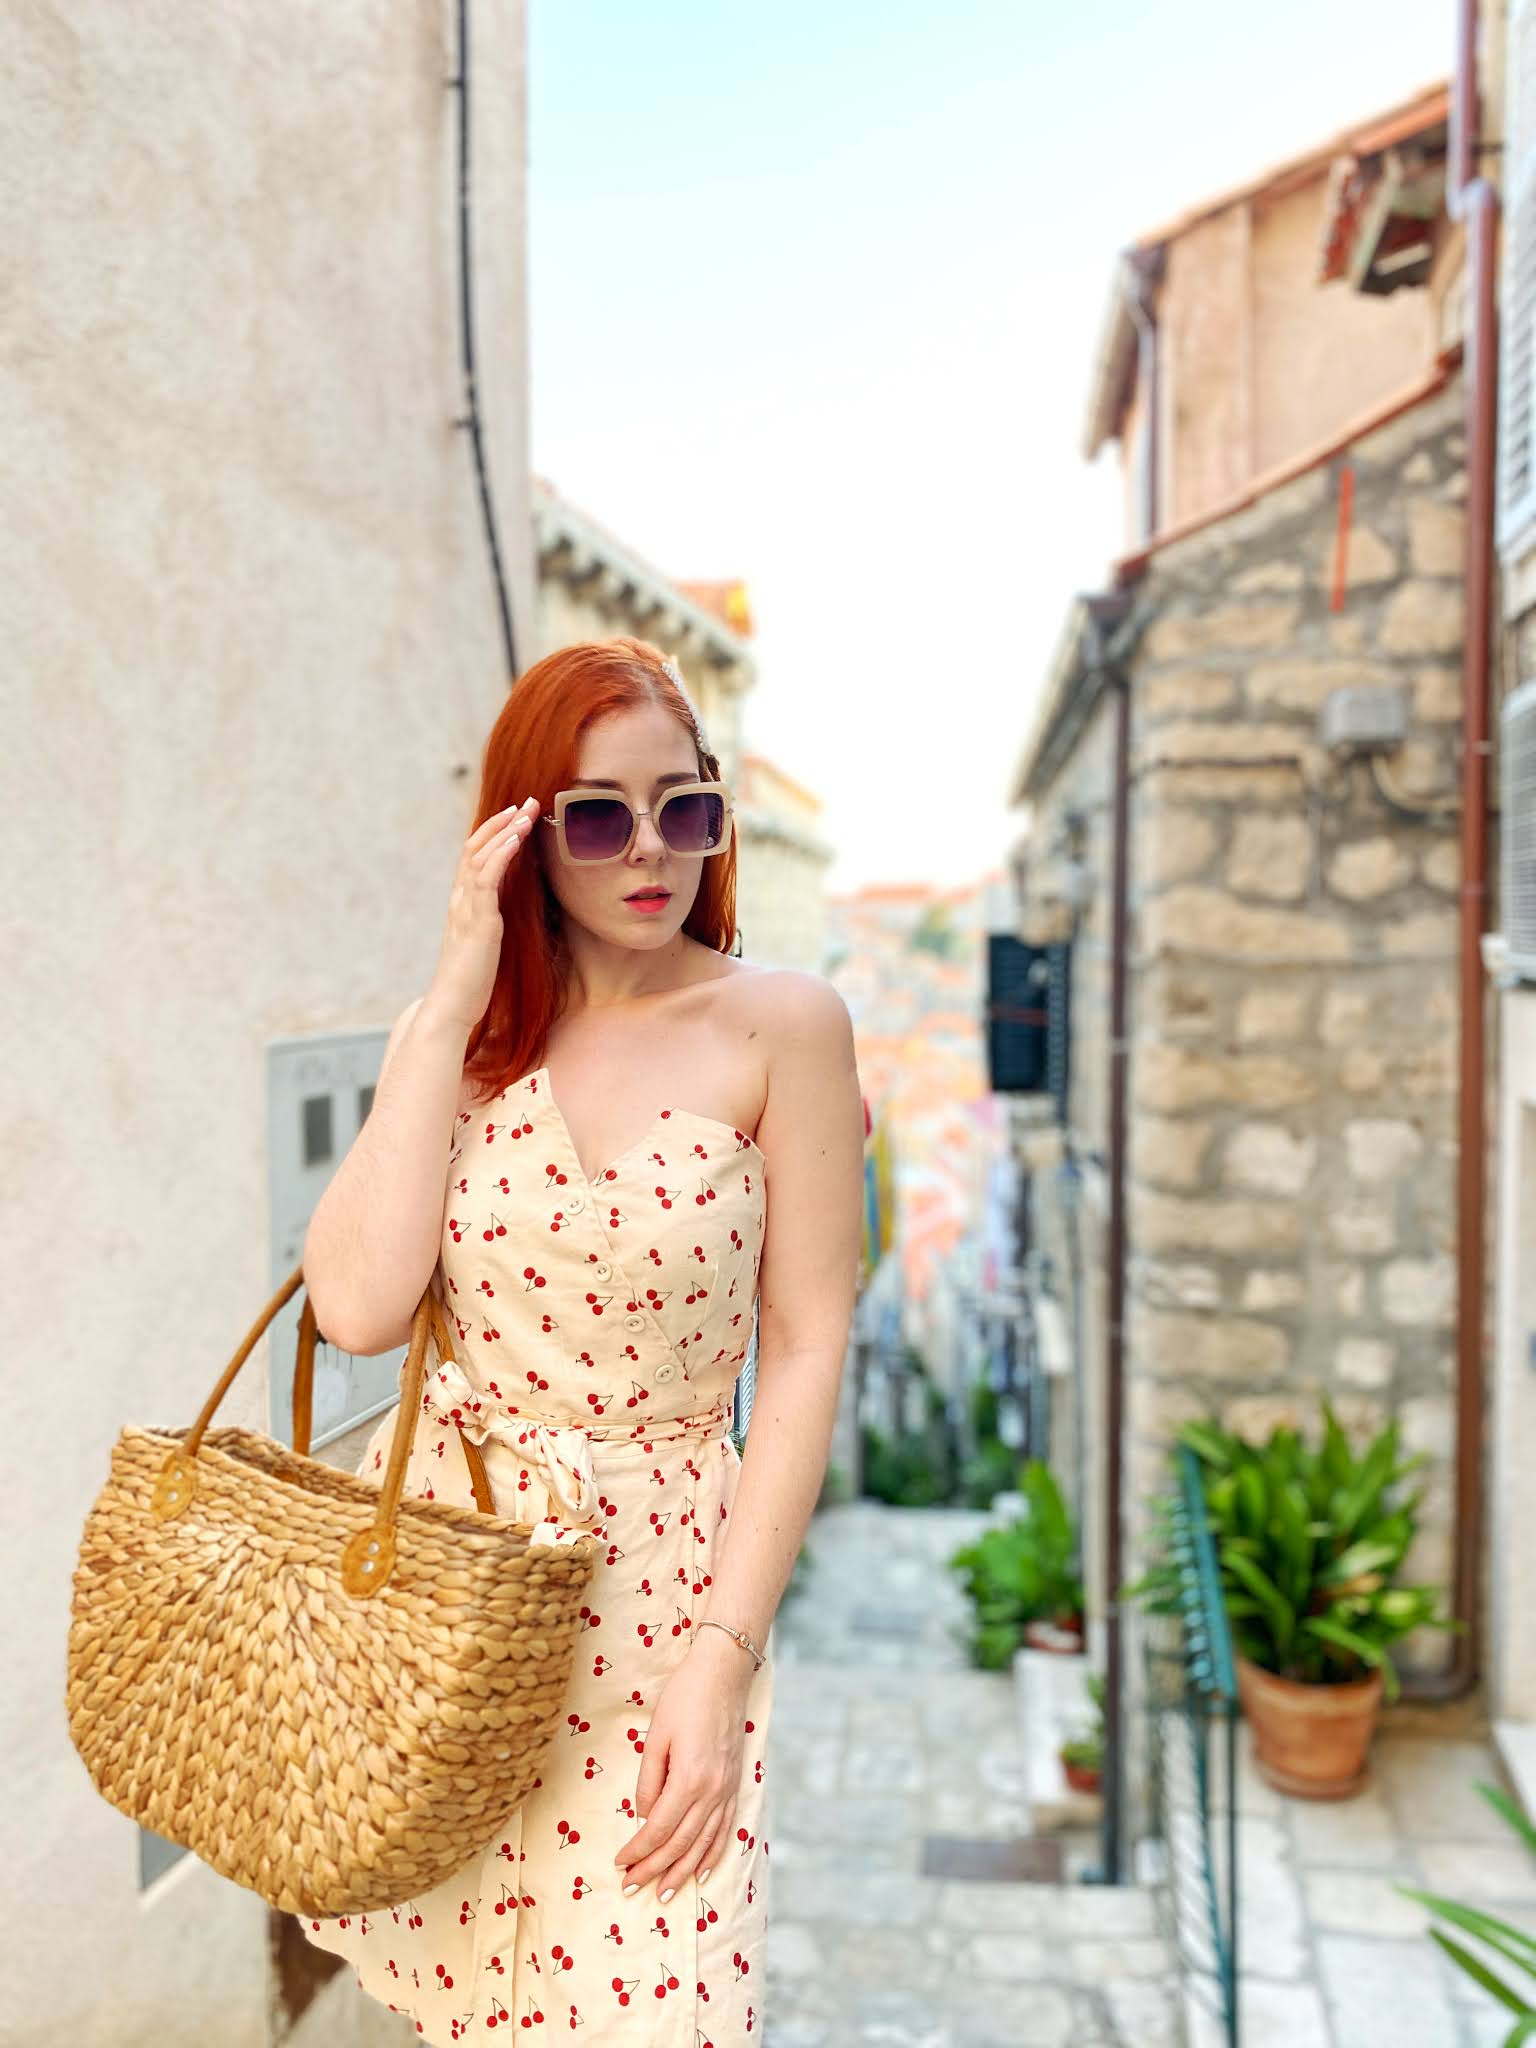 redhead wearing summer dress with cherries